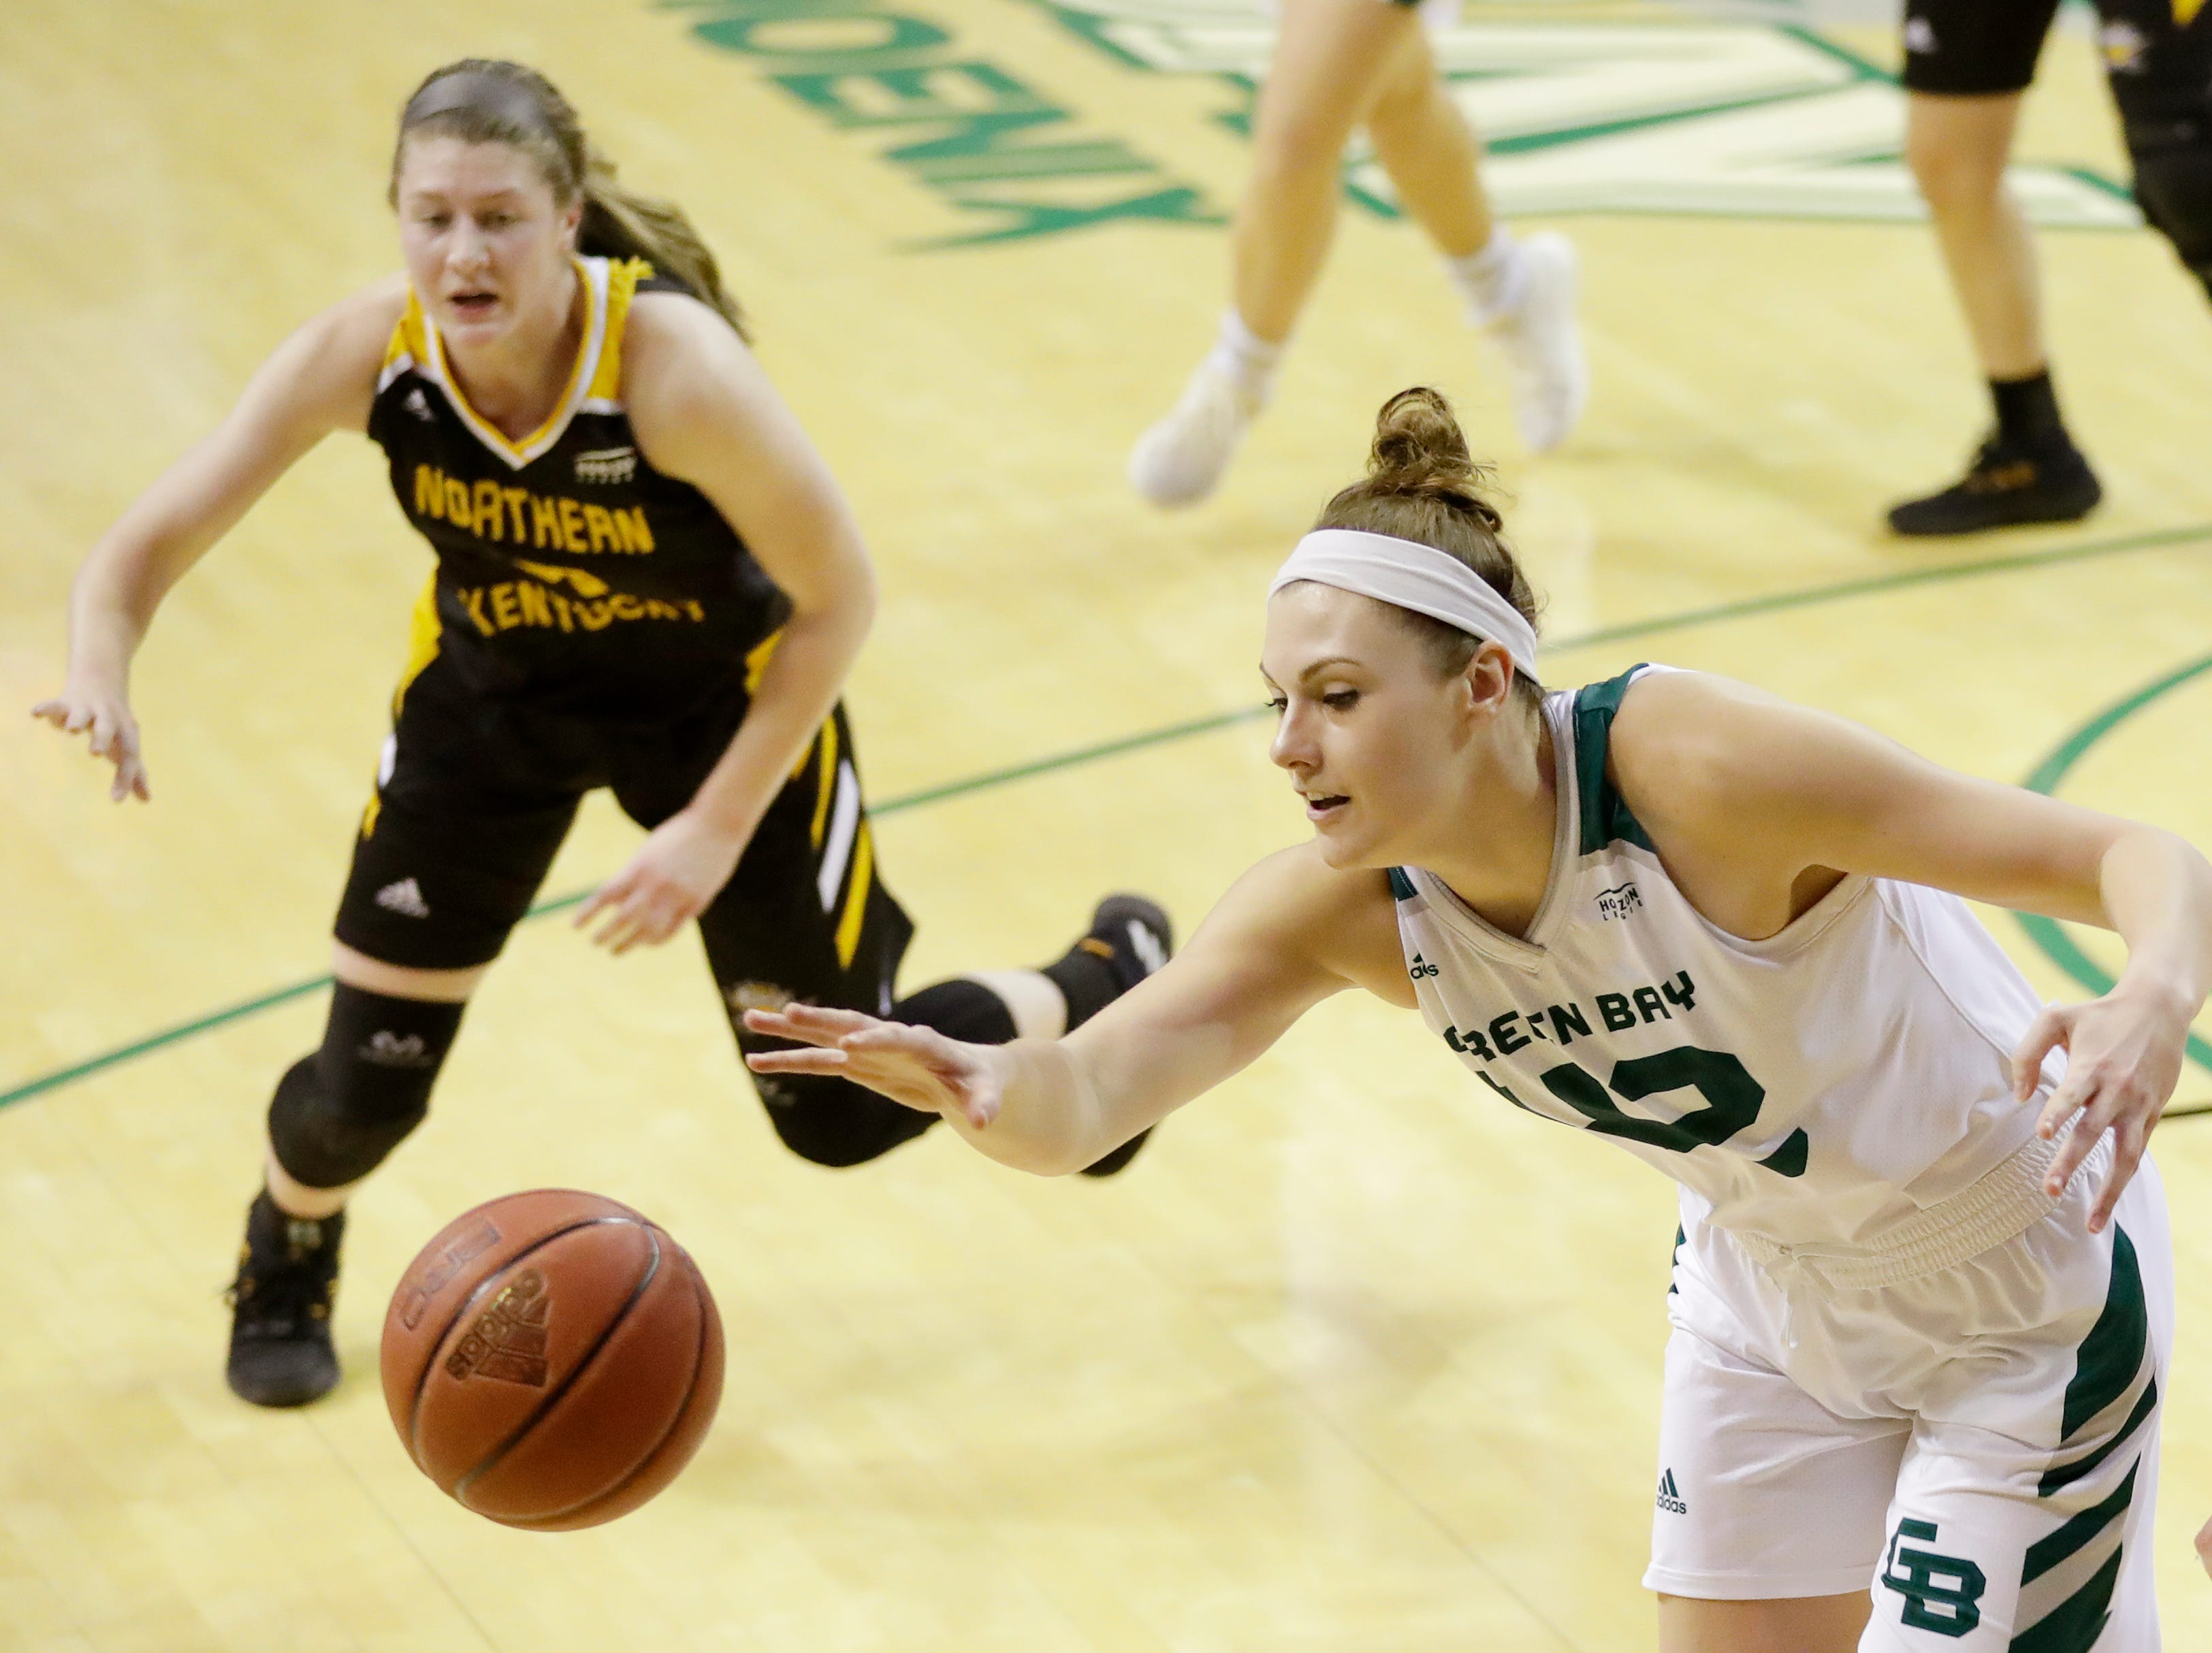 Green Bay Phoenix forward/center Mackenzie Wolf (42) gets to a loose ball against the Northern Kentucky Norse in a Horizon League women's basketball game at the Kress Center on Thursday, February 7, 2019 in Green Bay, Wis.